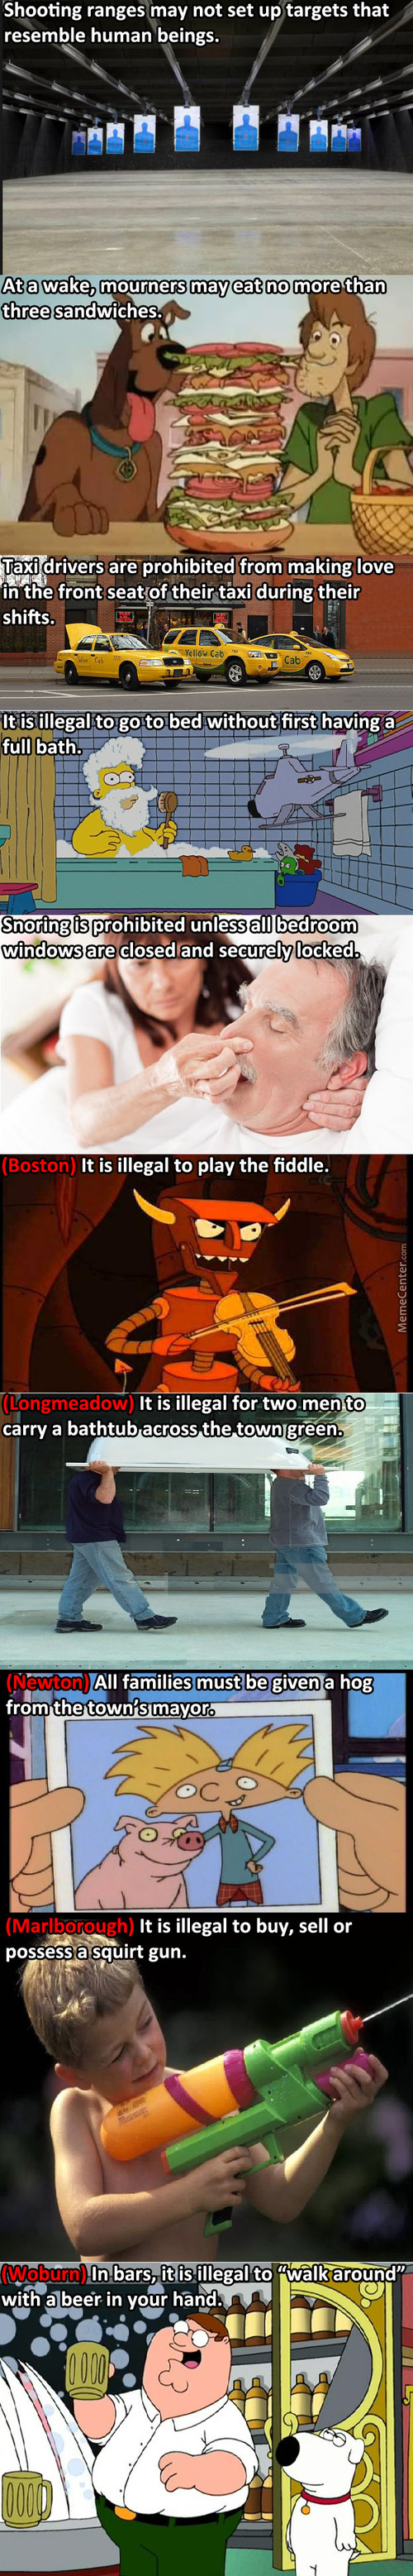 Silly Laws Massachusetts